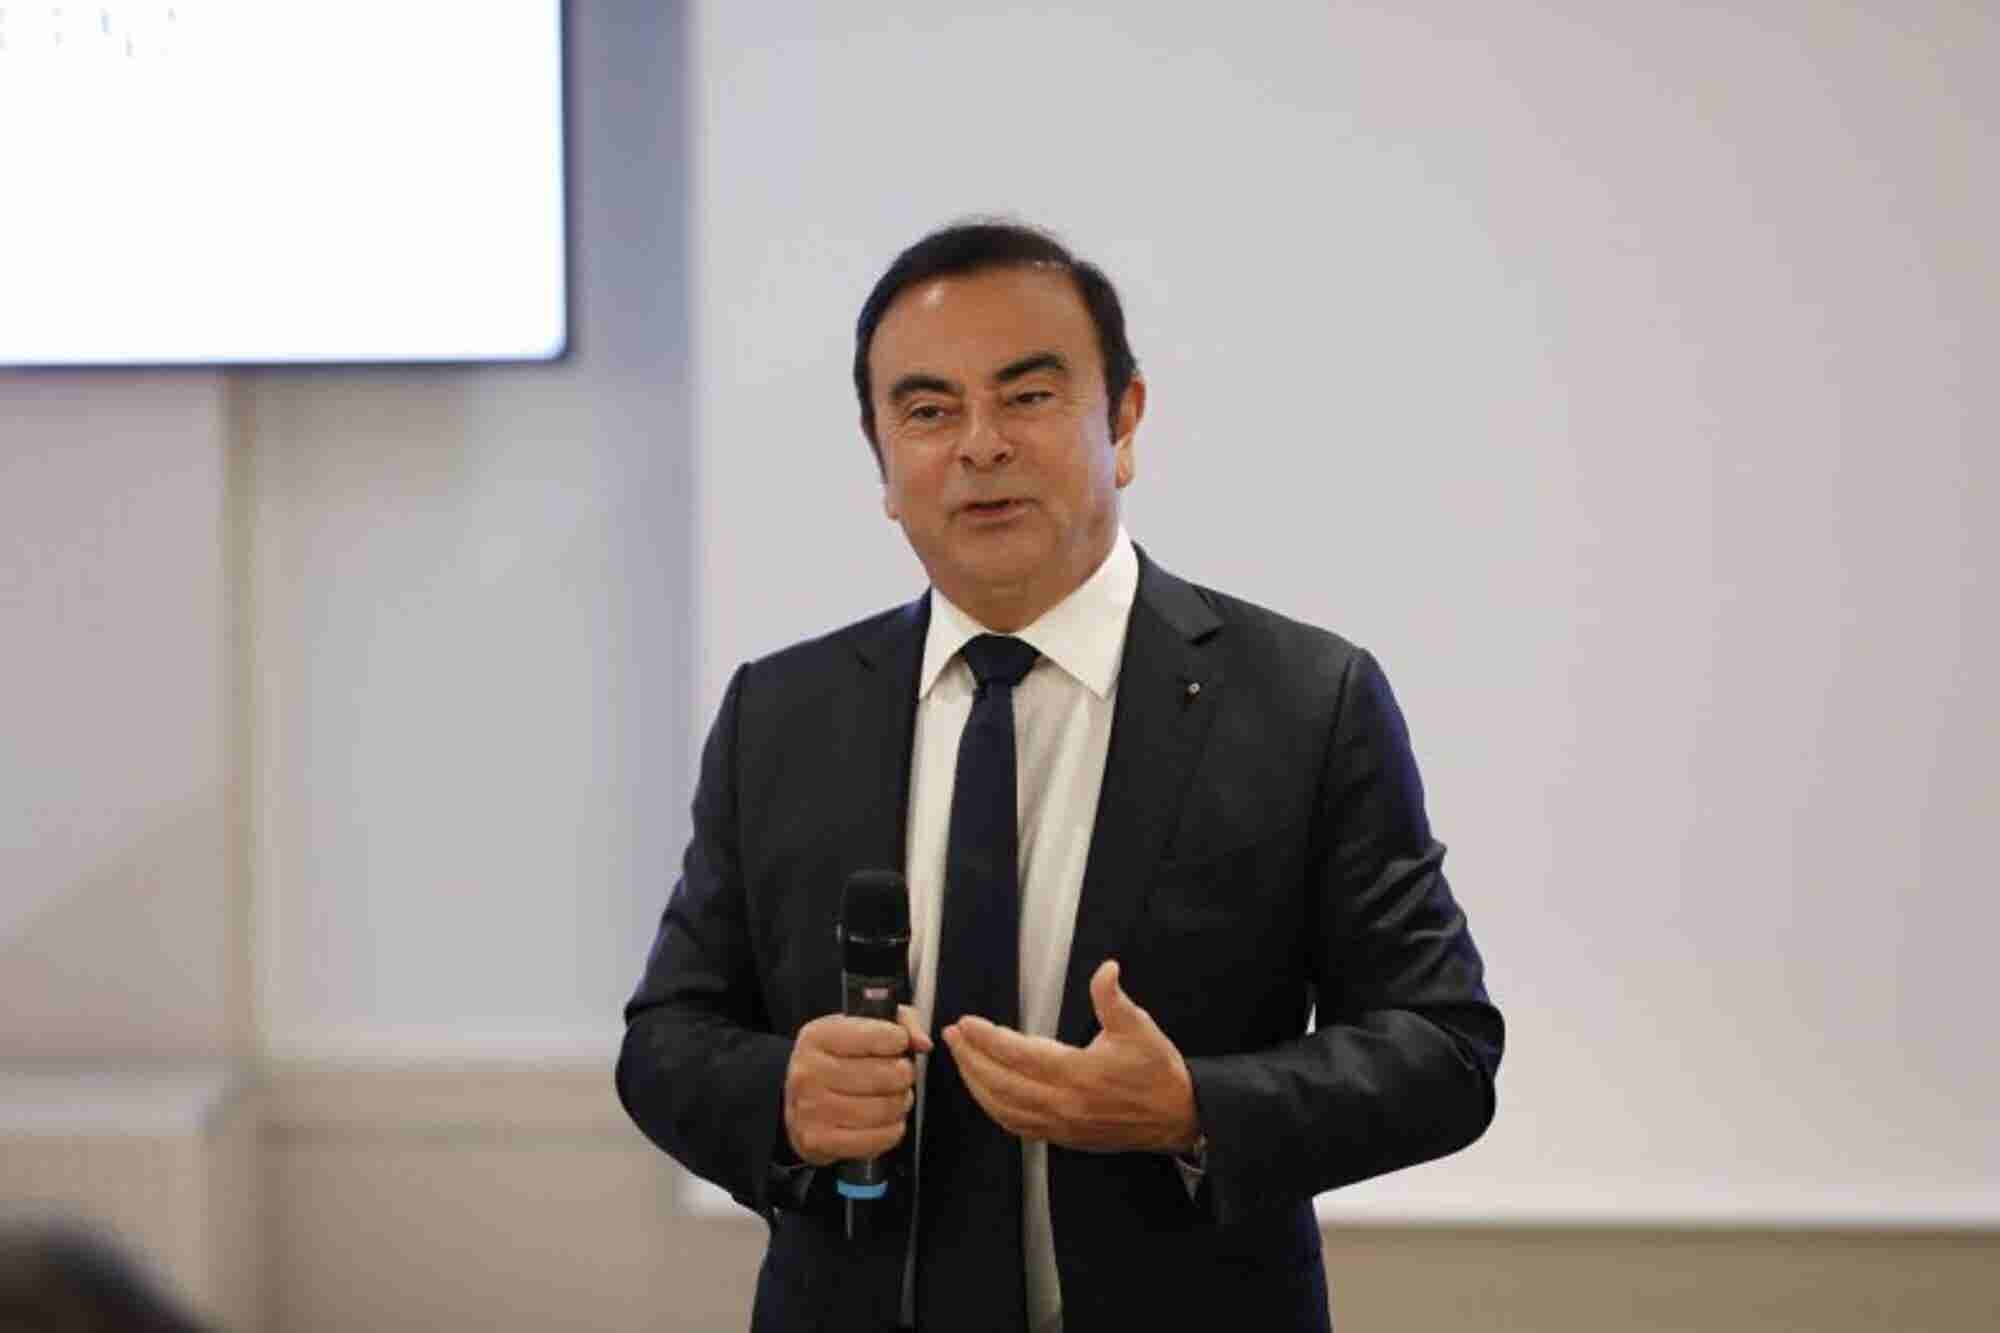 Nissan Chairman Carlos Ghosn Arrested Over Financial Misconduct Charges